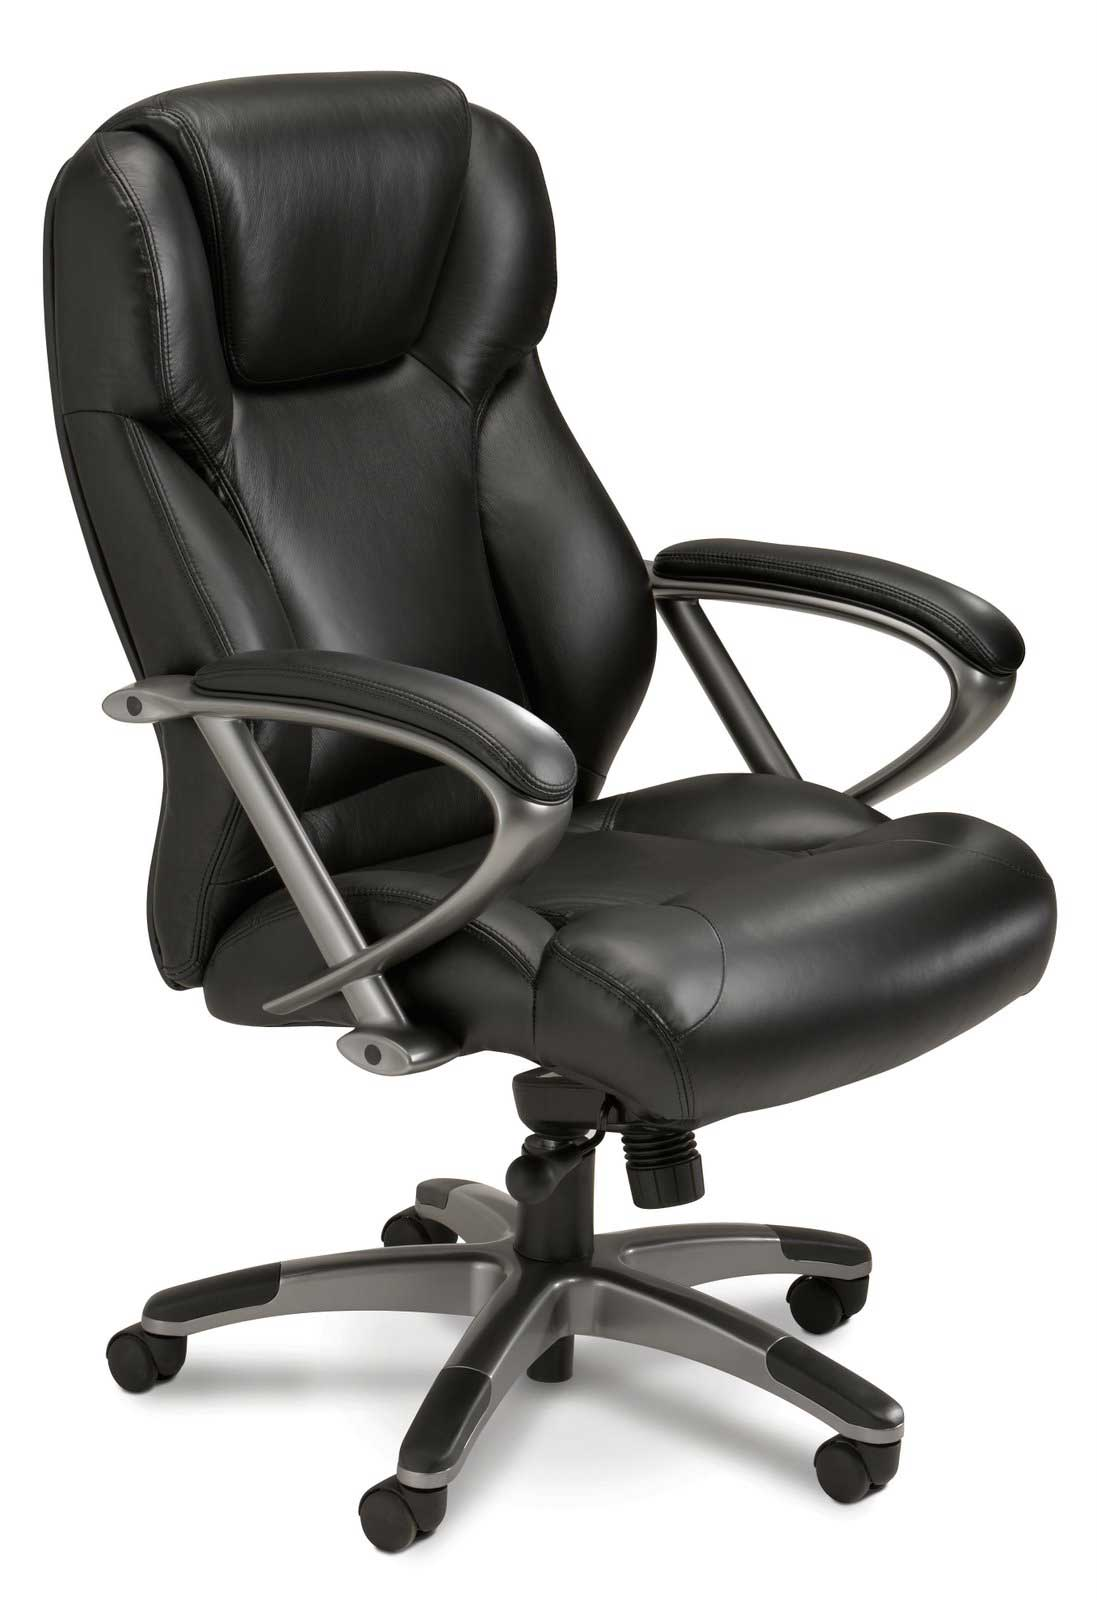 Luxury Office Chair Luxury Office Chairs For Executive